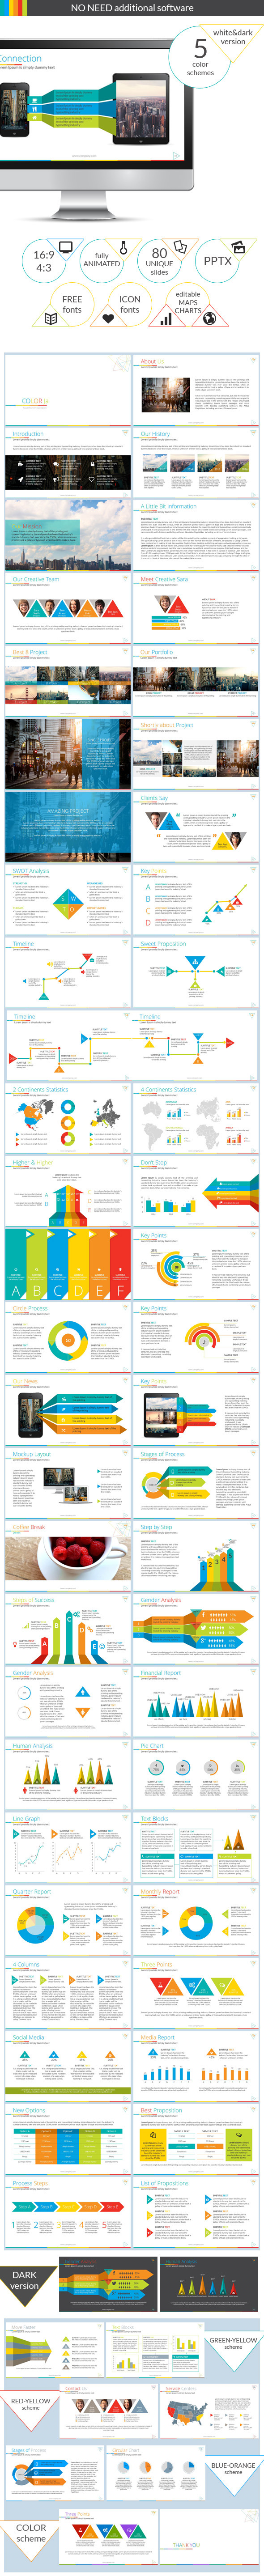 GraphicRiver Color Ja PowerPoint Presentation 8831721